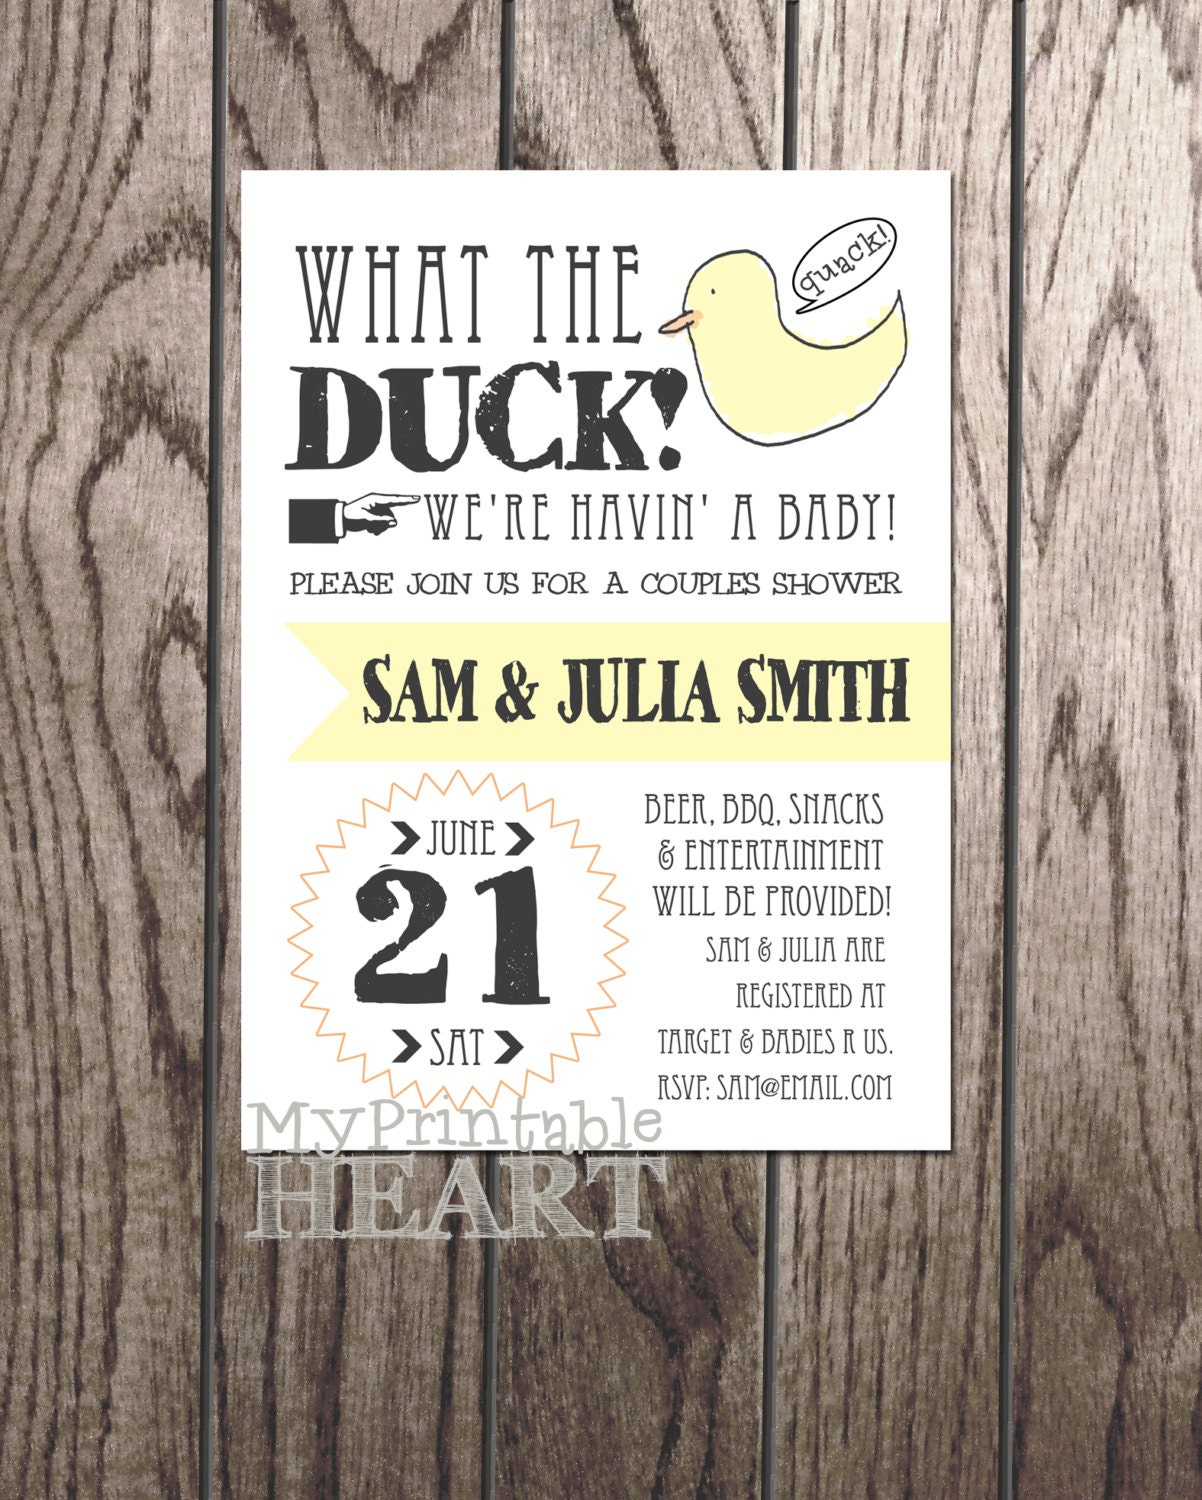 Couples Bbq Baby Shower: What The Duck Couples Baby Shower Invitation